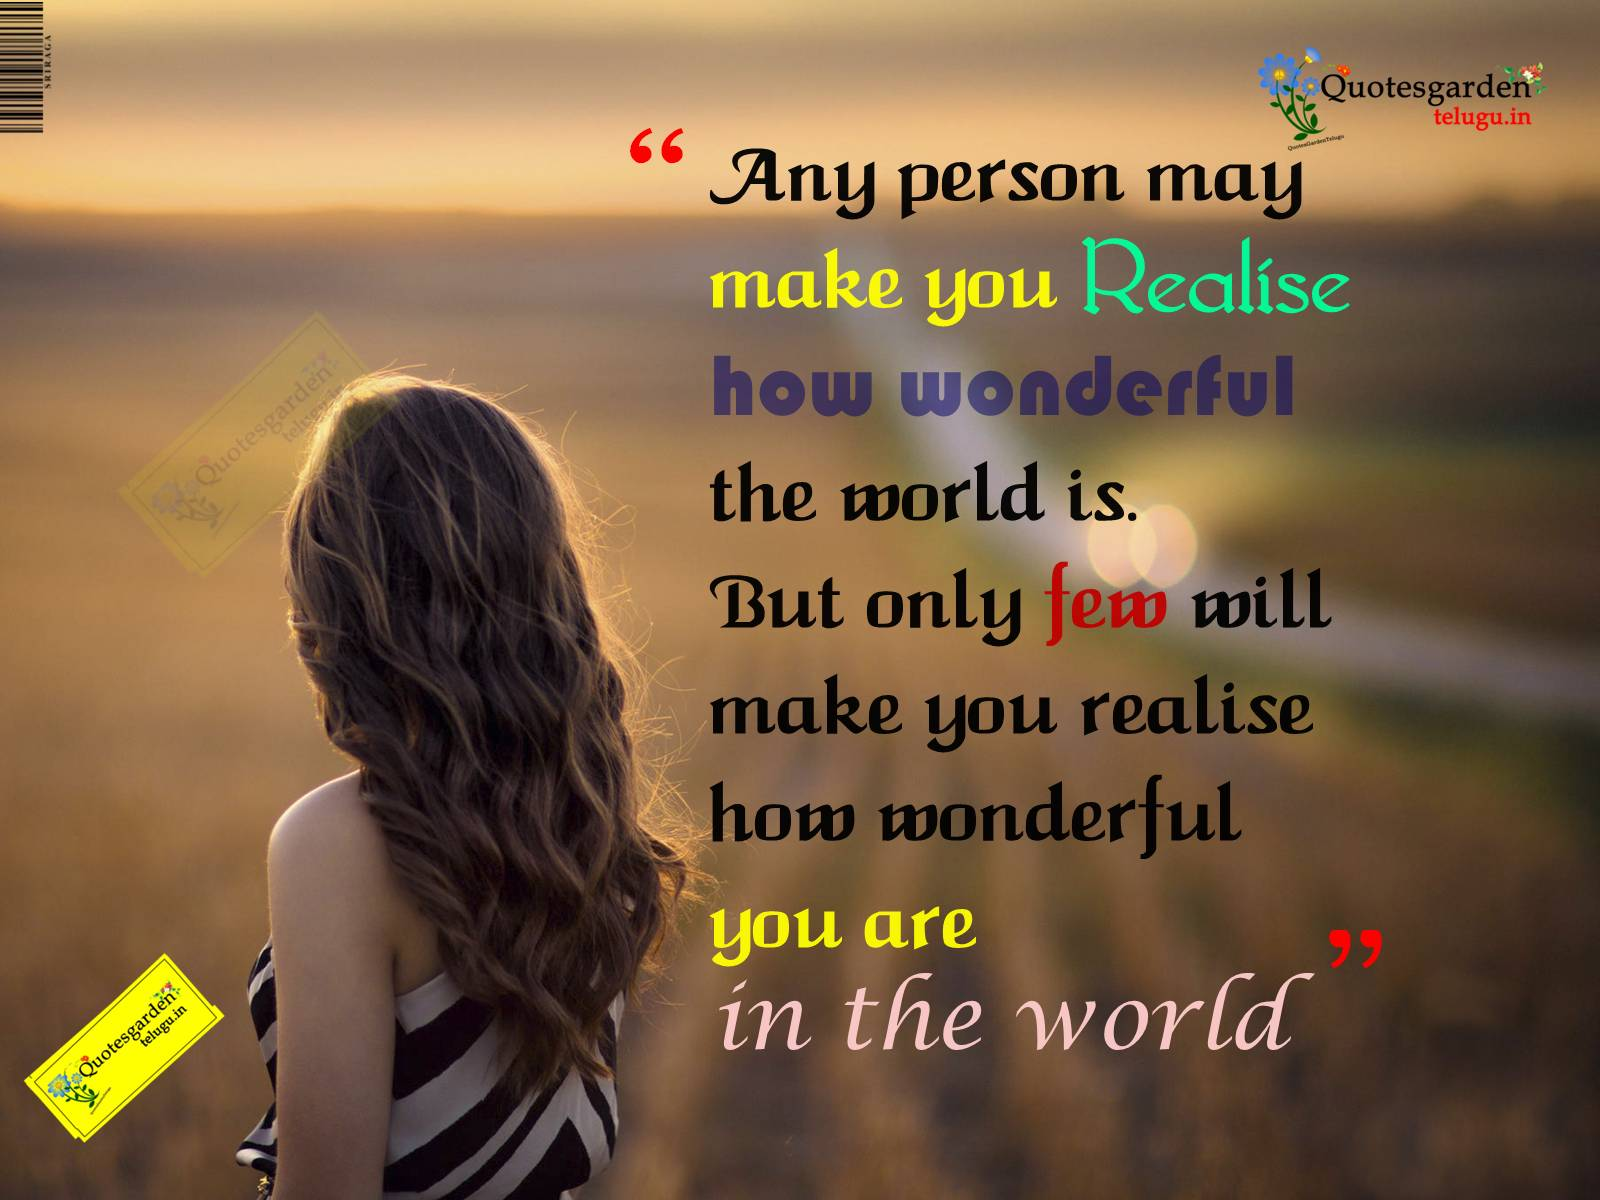 Download Best Heart Touching Wallpapers With Quotes Gallery